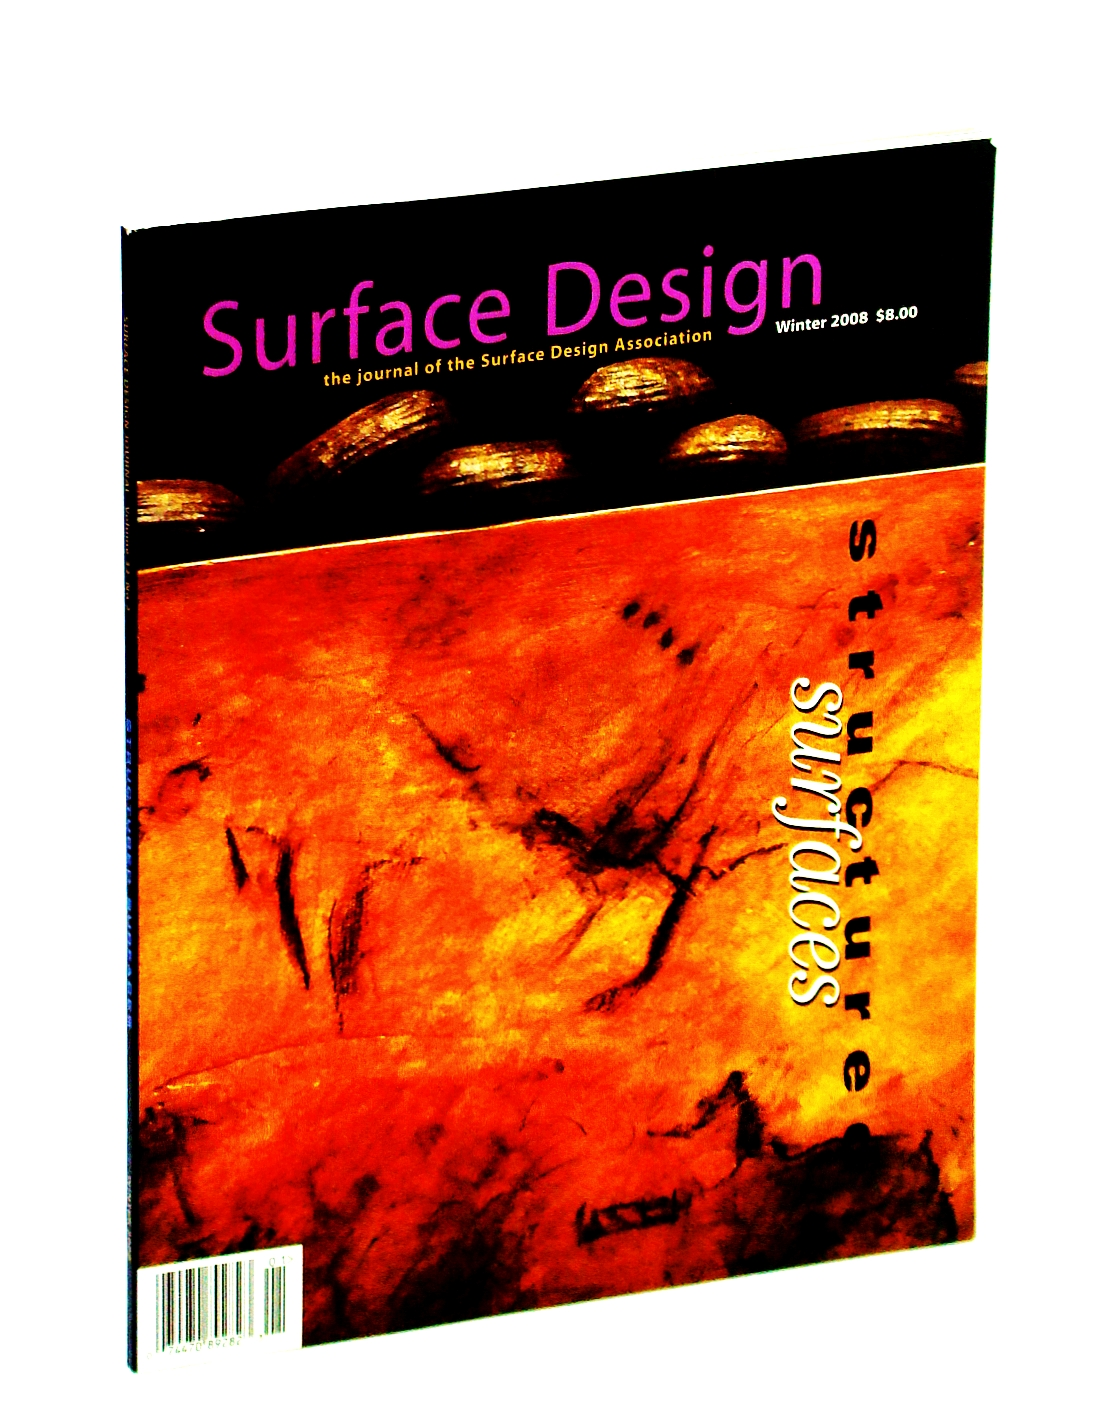 Image for Surface Design Magazine, Winter 2008 - Structured Surfaces